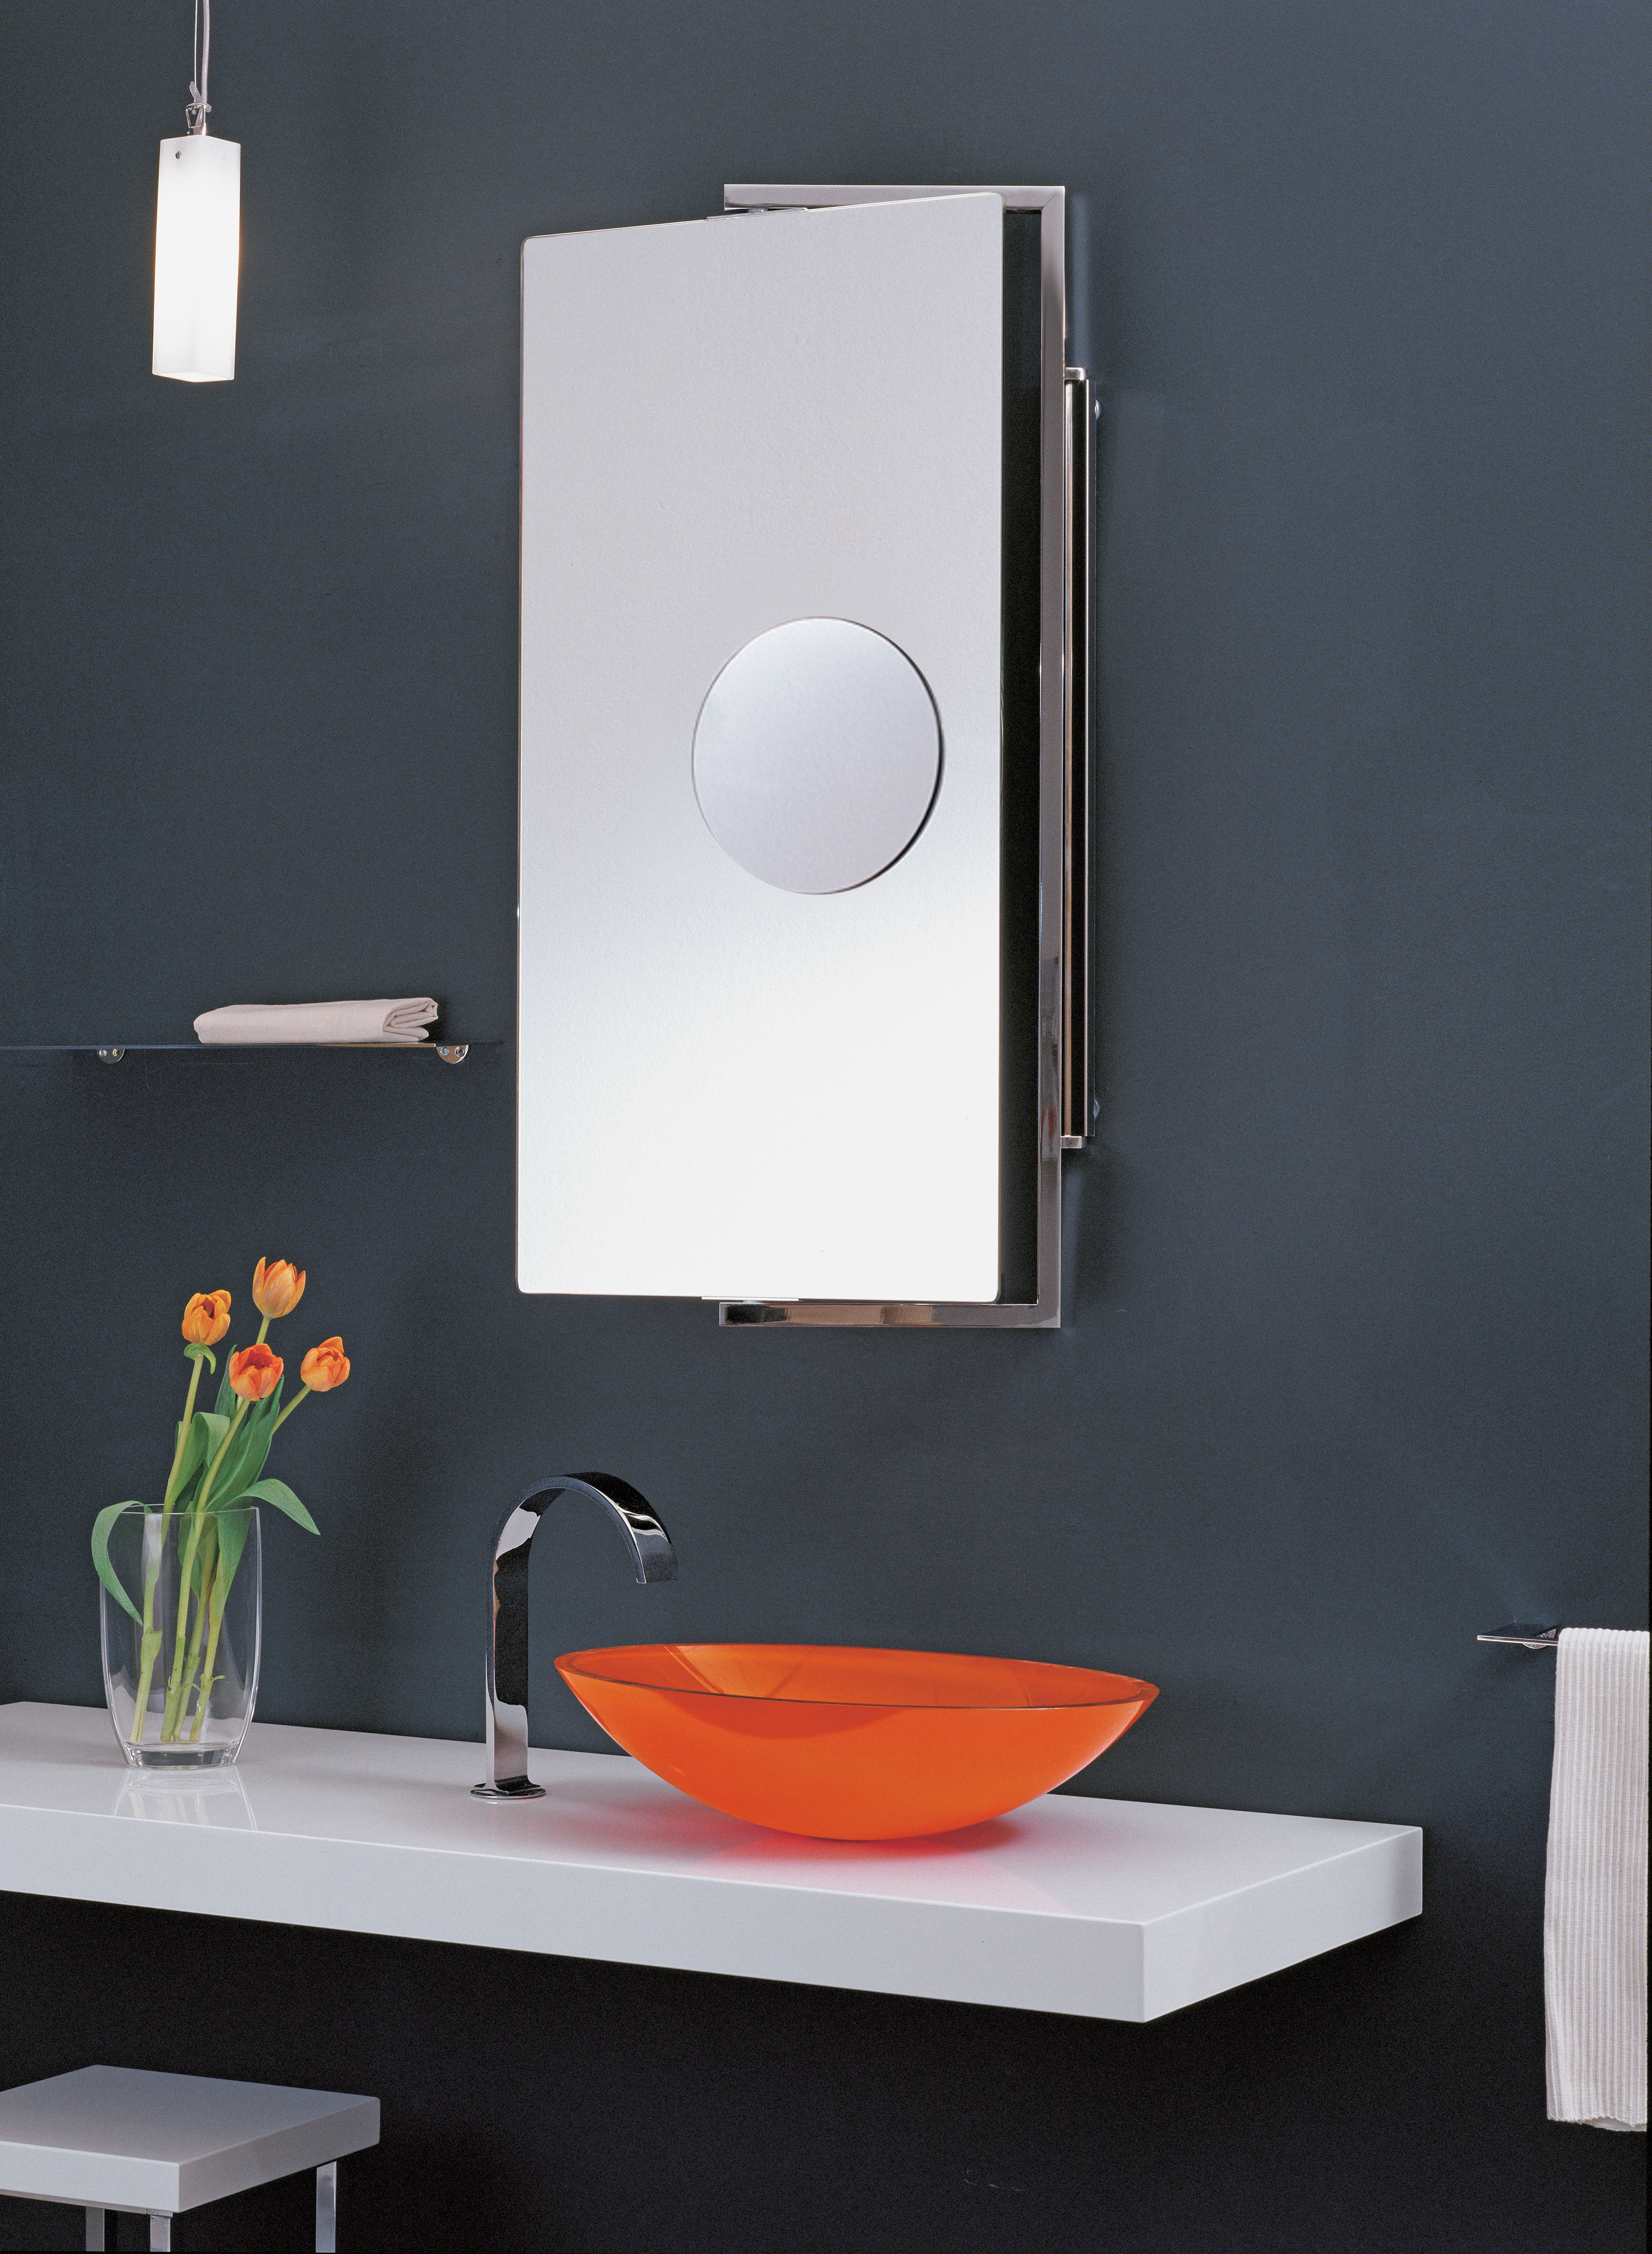 Mirror Offers Flexible Range Of Views Remodeling Industry News Qualified Remodeler